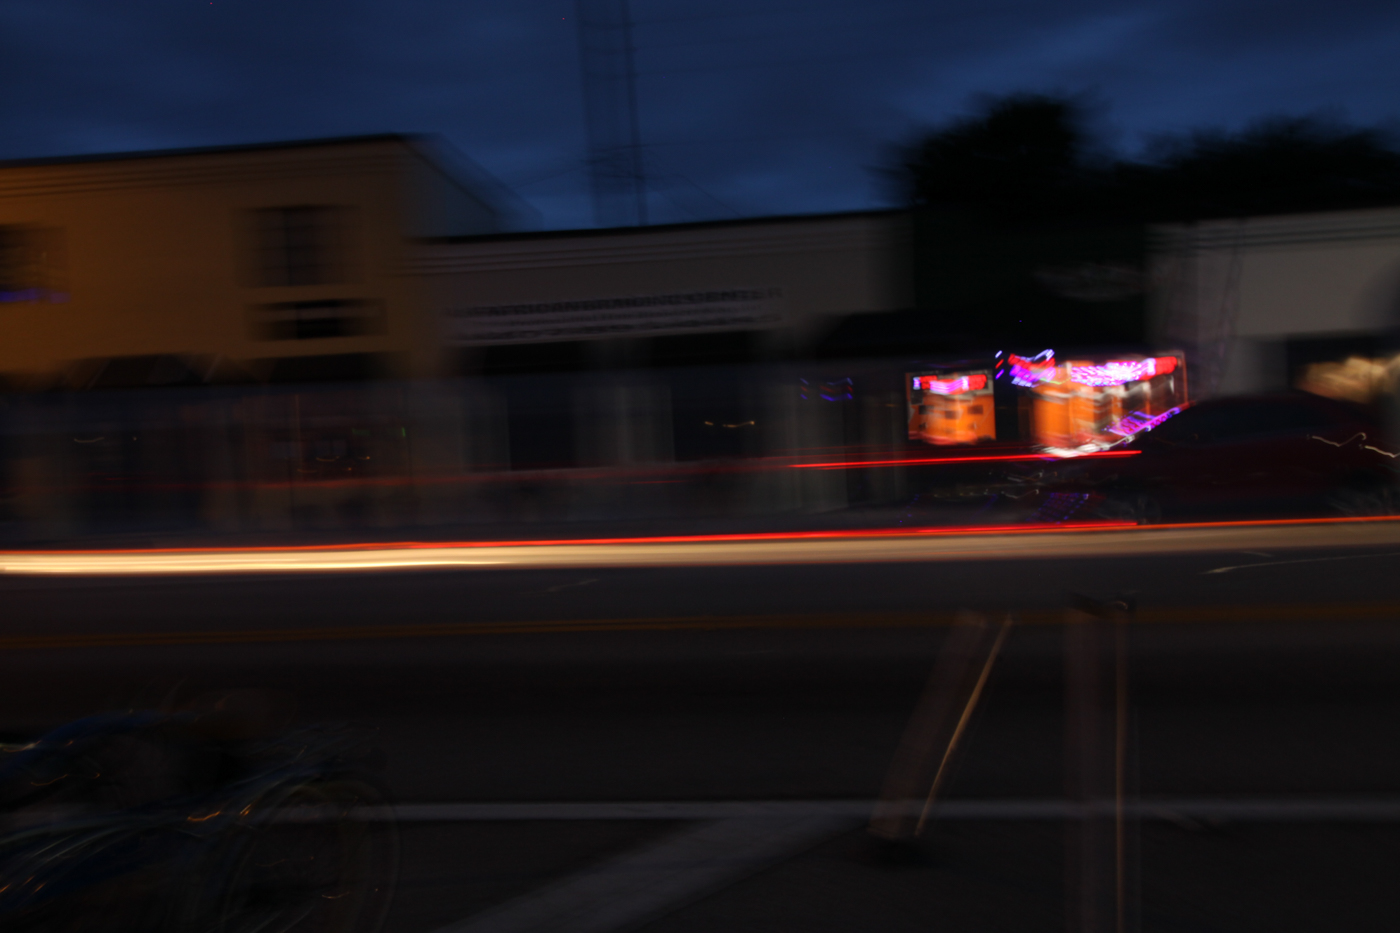 Experimenting with long shutter speeds and panning. Photo by student Frank Paradiso